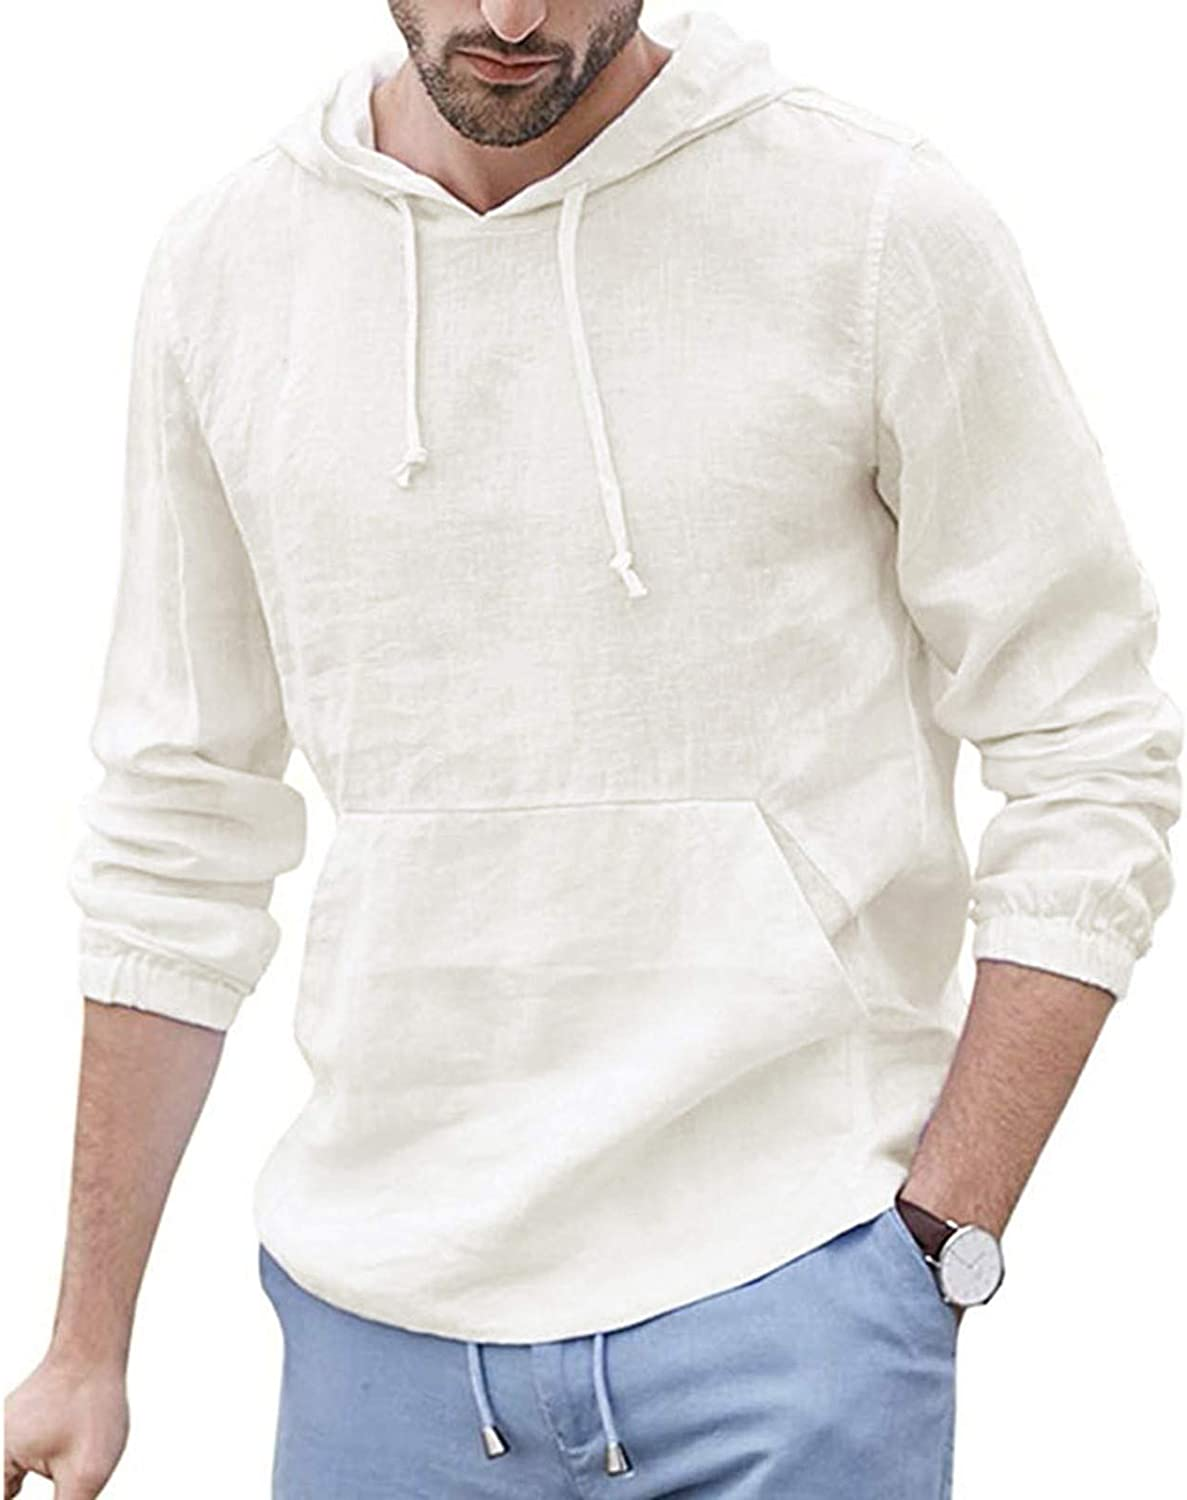 HONGJ Cotton Linen Hoodies for Mens, Fall Long Sleeve Hooded Shirts Lightweight Loose Casual Pullover Tops with Pocket